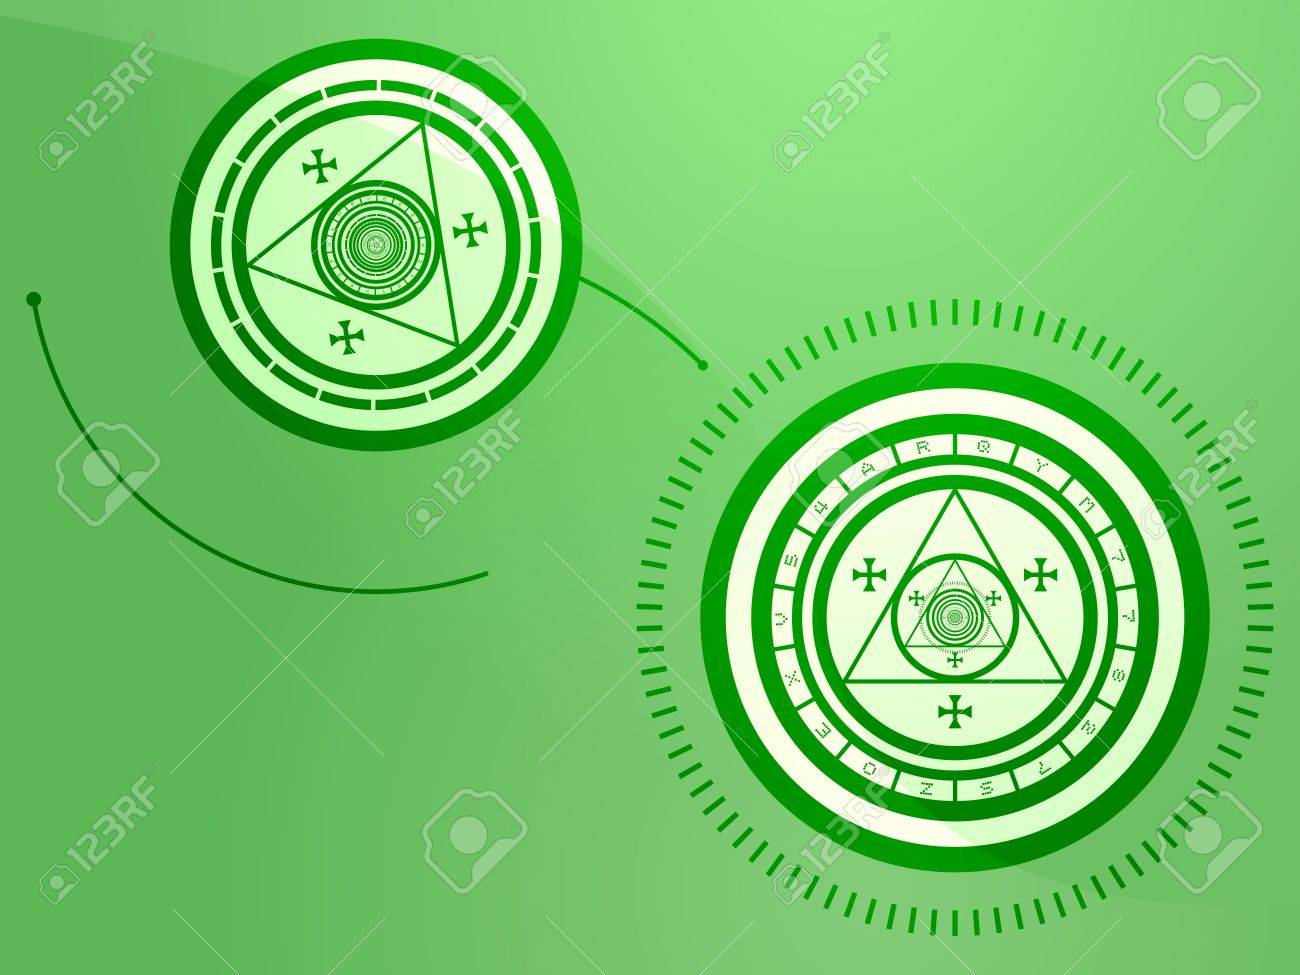 Wierd arcane symbols that look strange and occult Stock Photo - 6364944